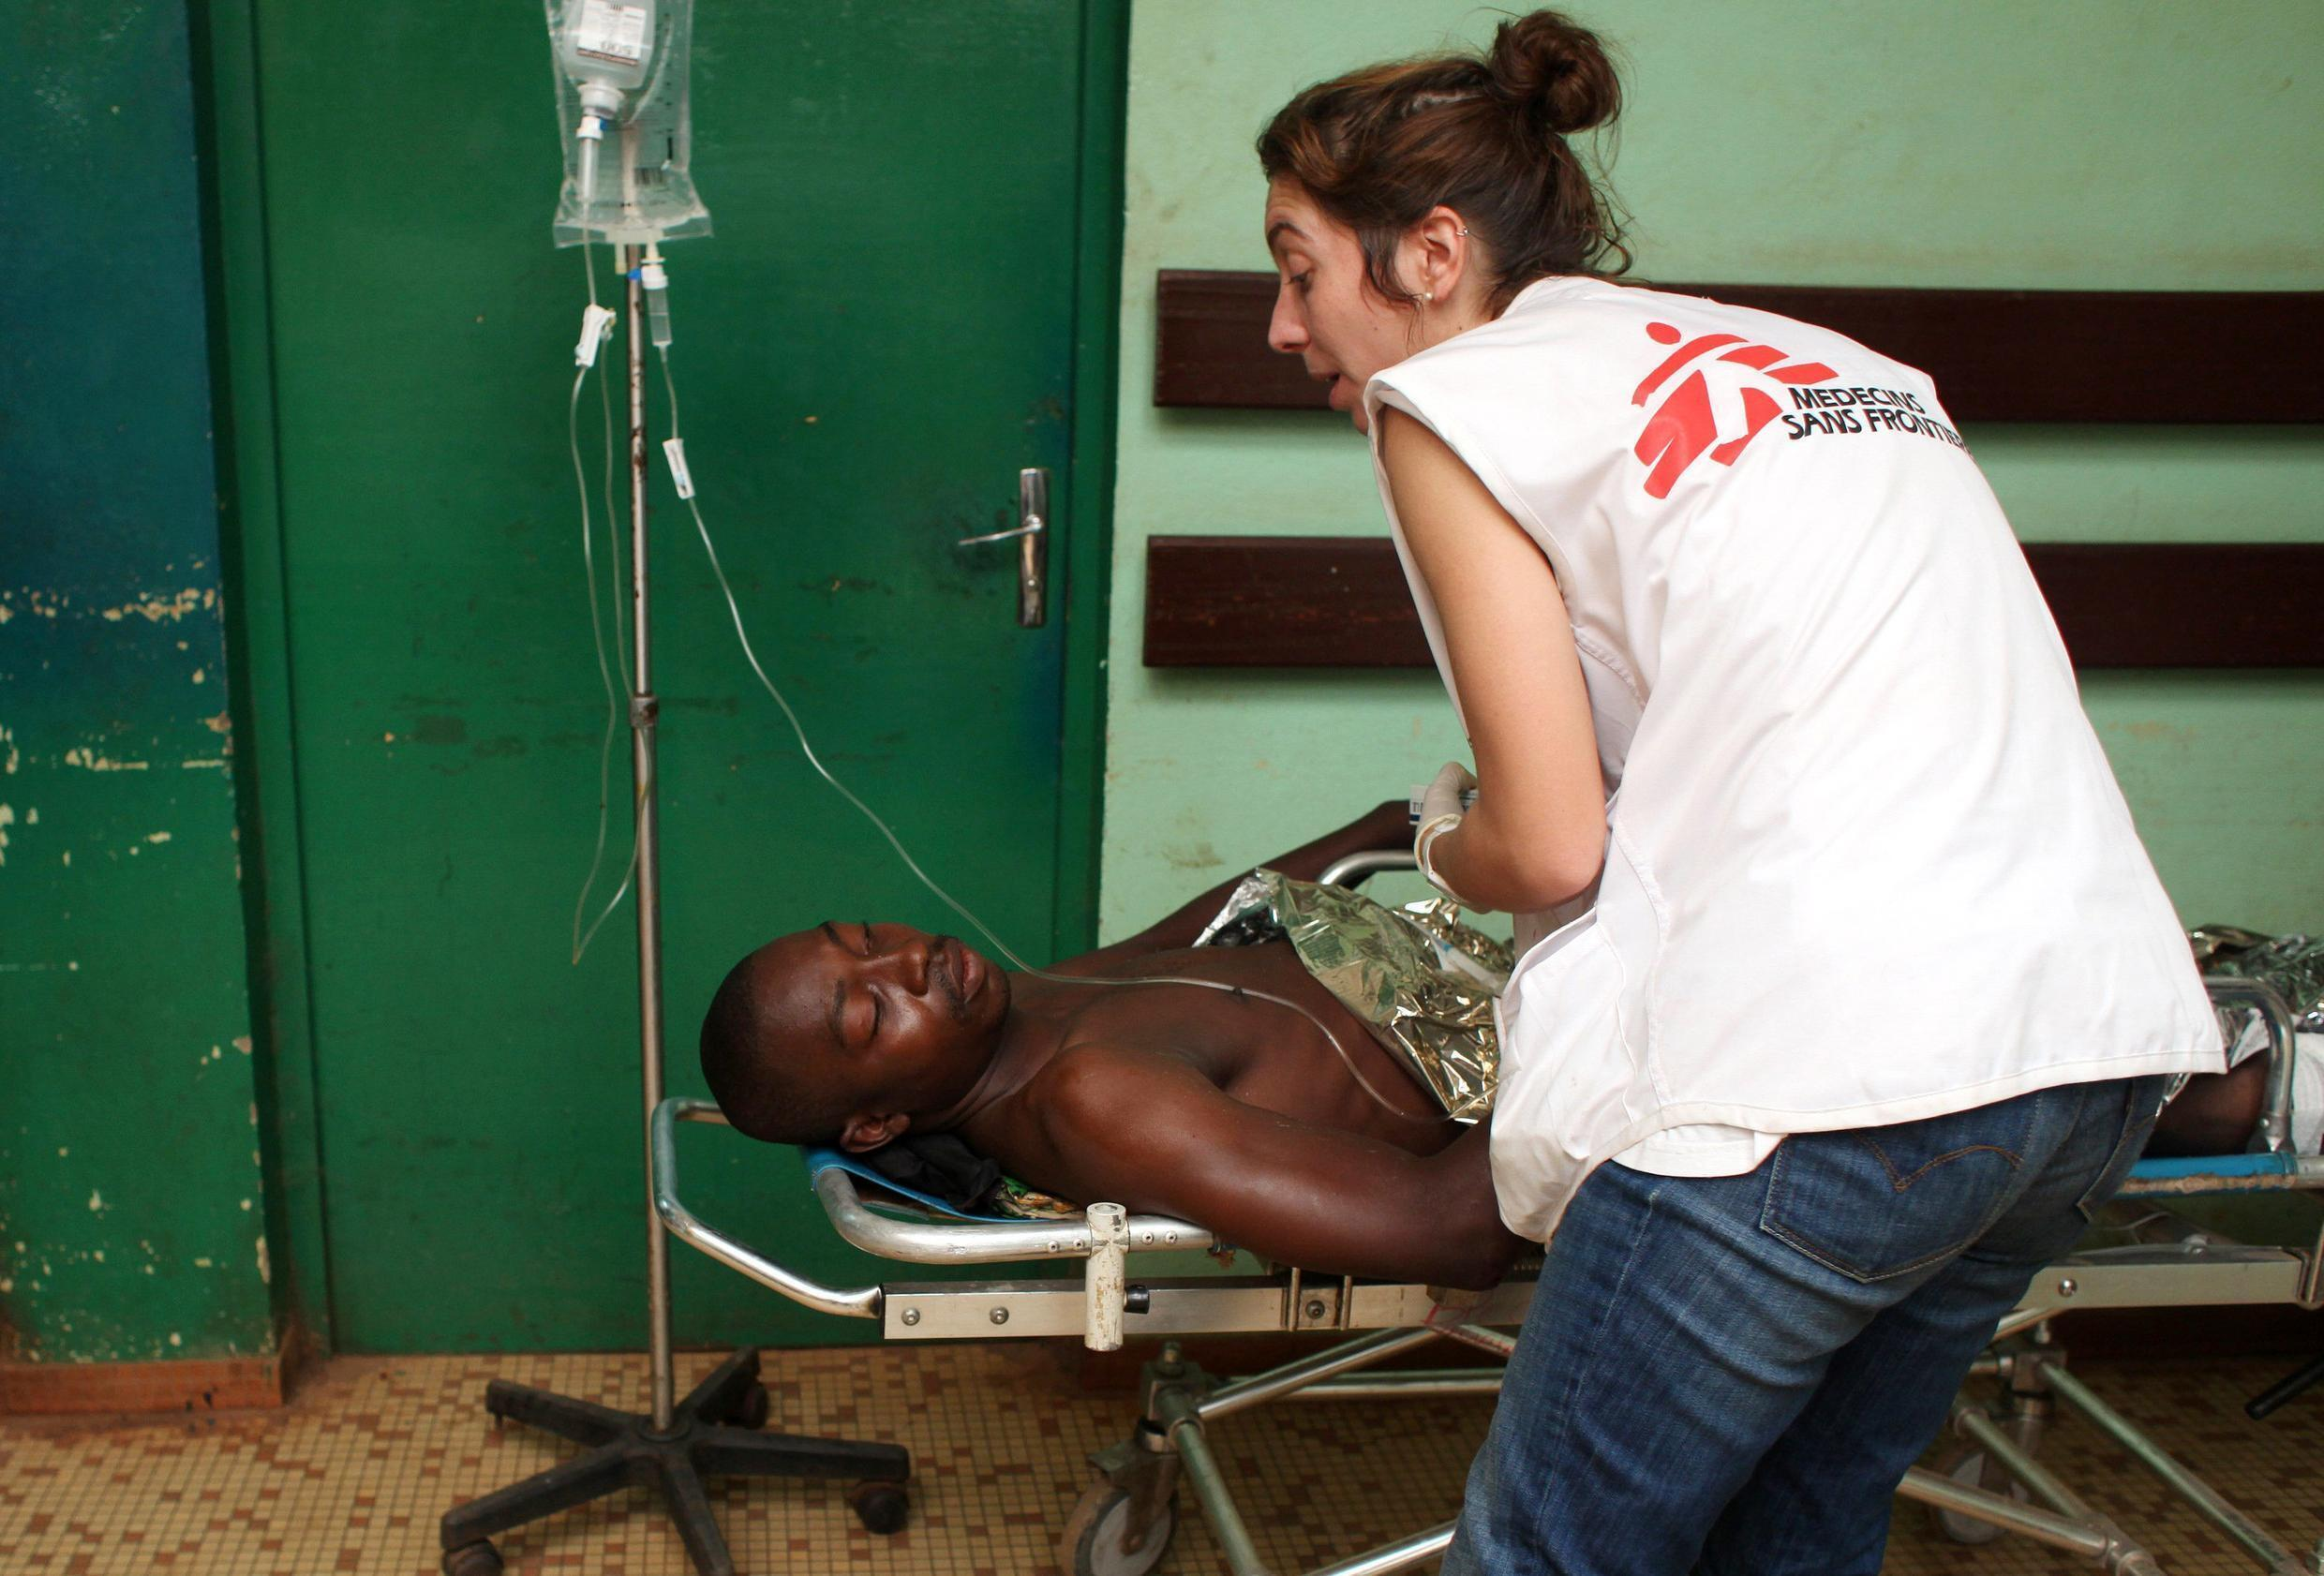 A Doctors Without Borders volunteer tends to a wounded man in Bangui